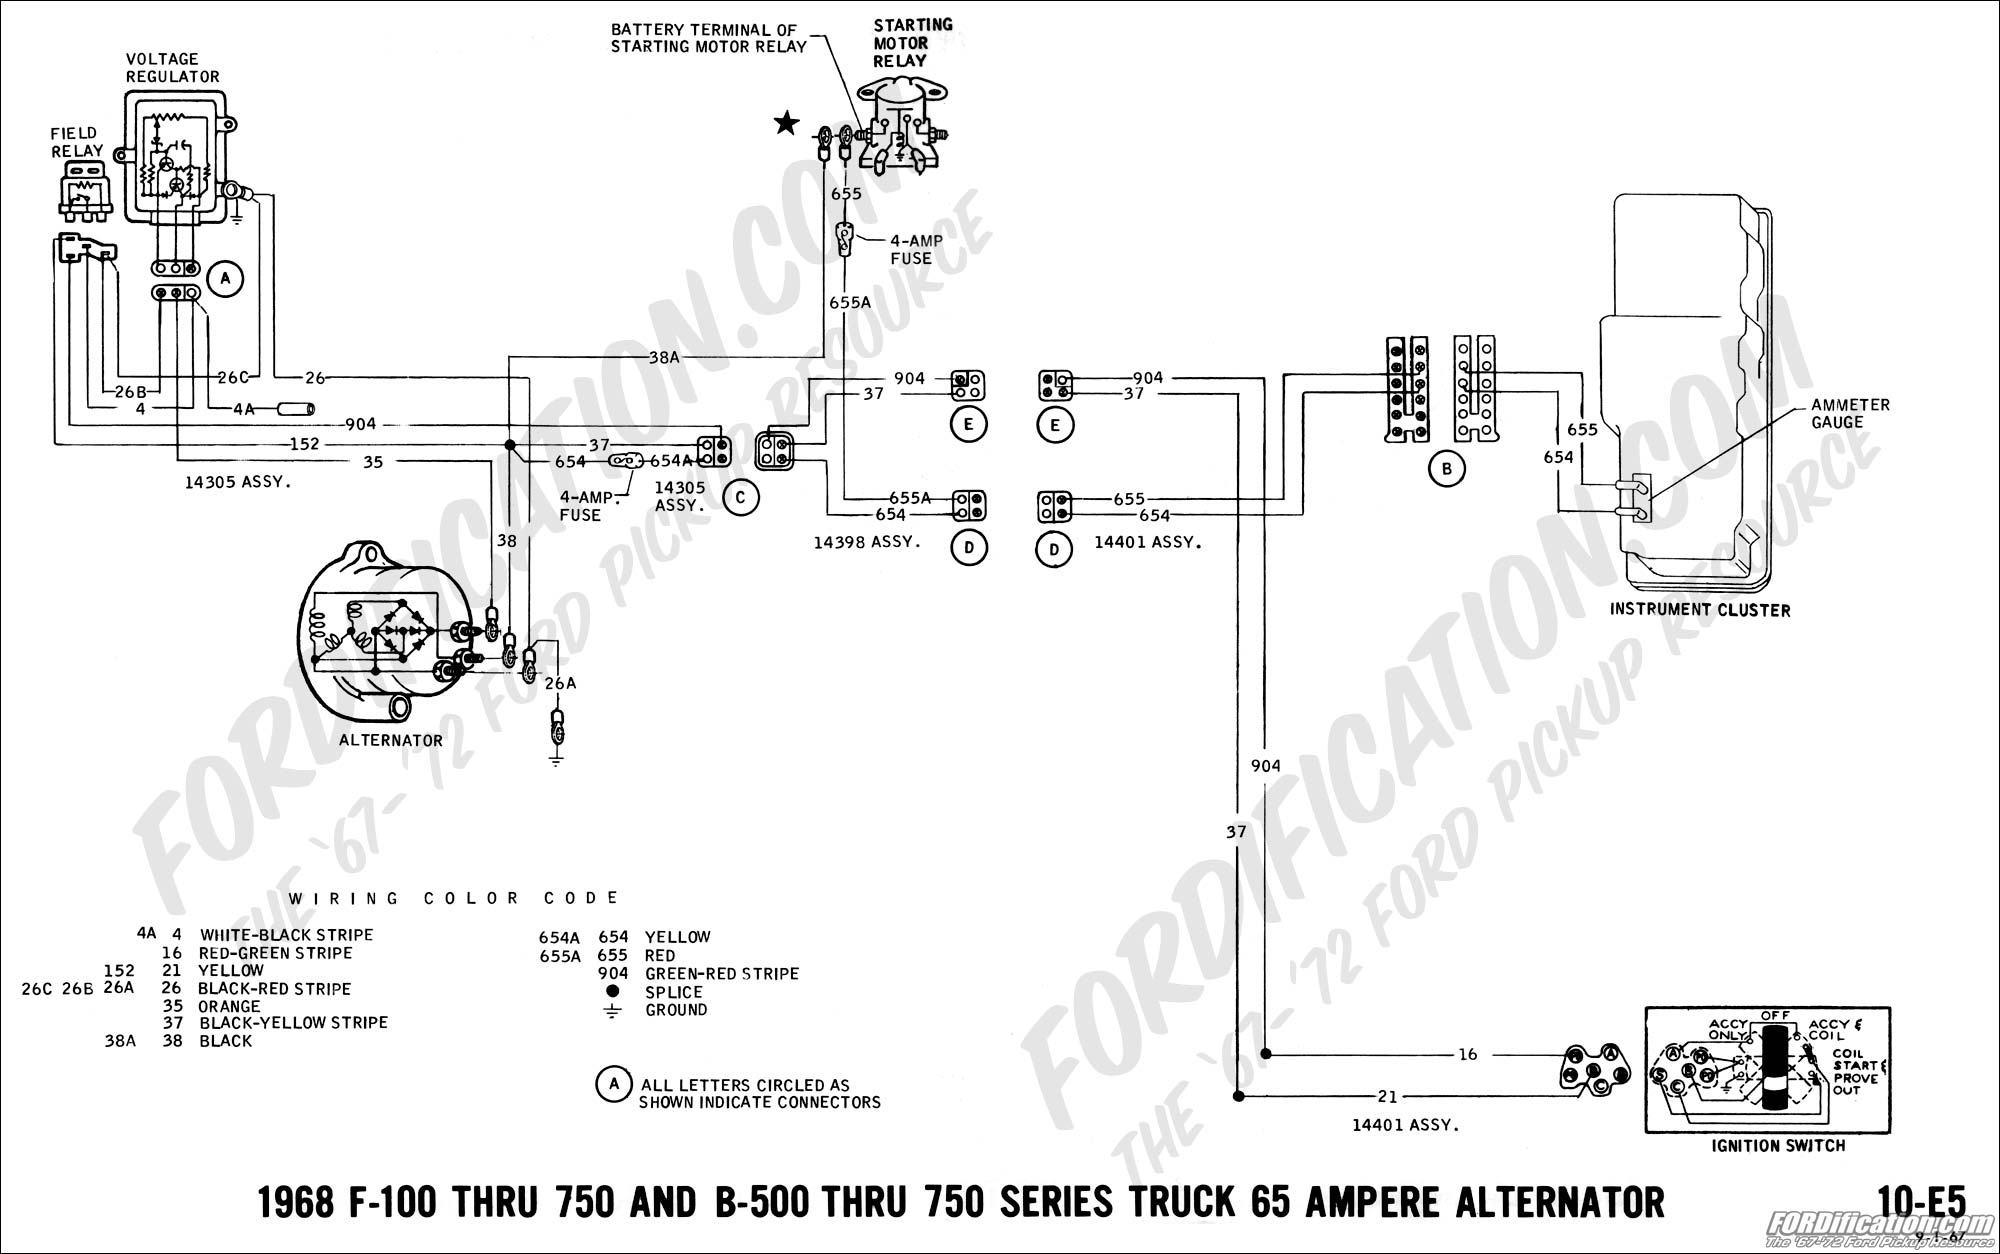 hight resolution of 1994 e350 ignition switch wiring diagram simple wiring schema ford econoline e350 fuse diagram 2006 ford e350 ignition wiring diagram